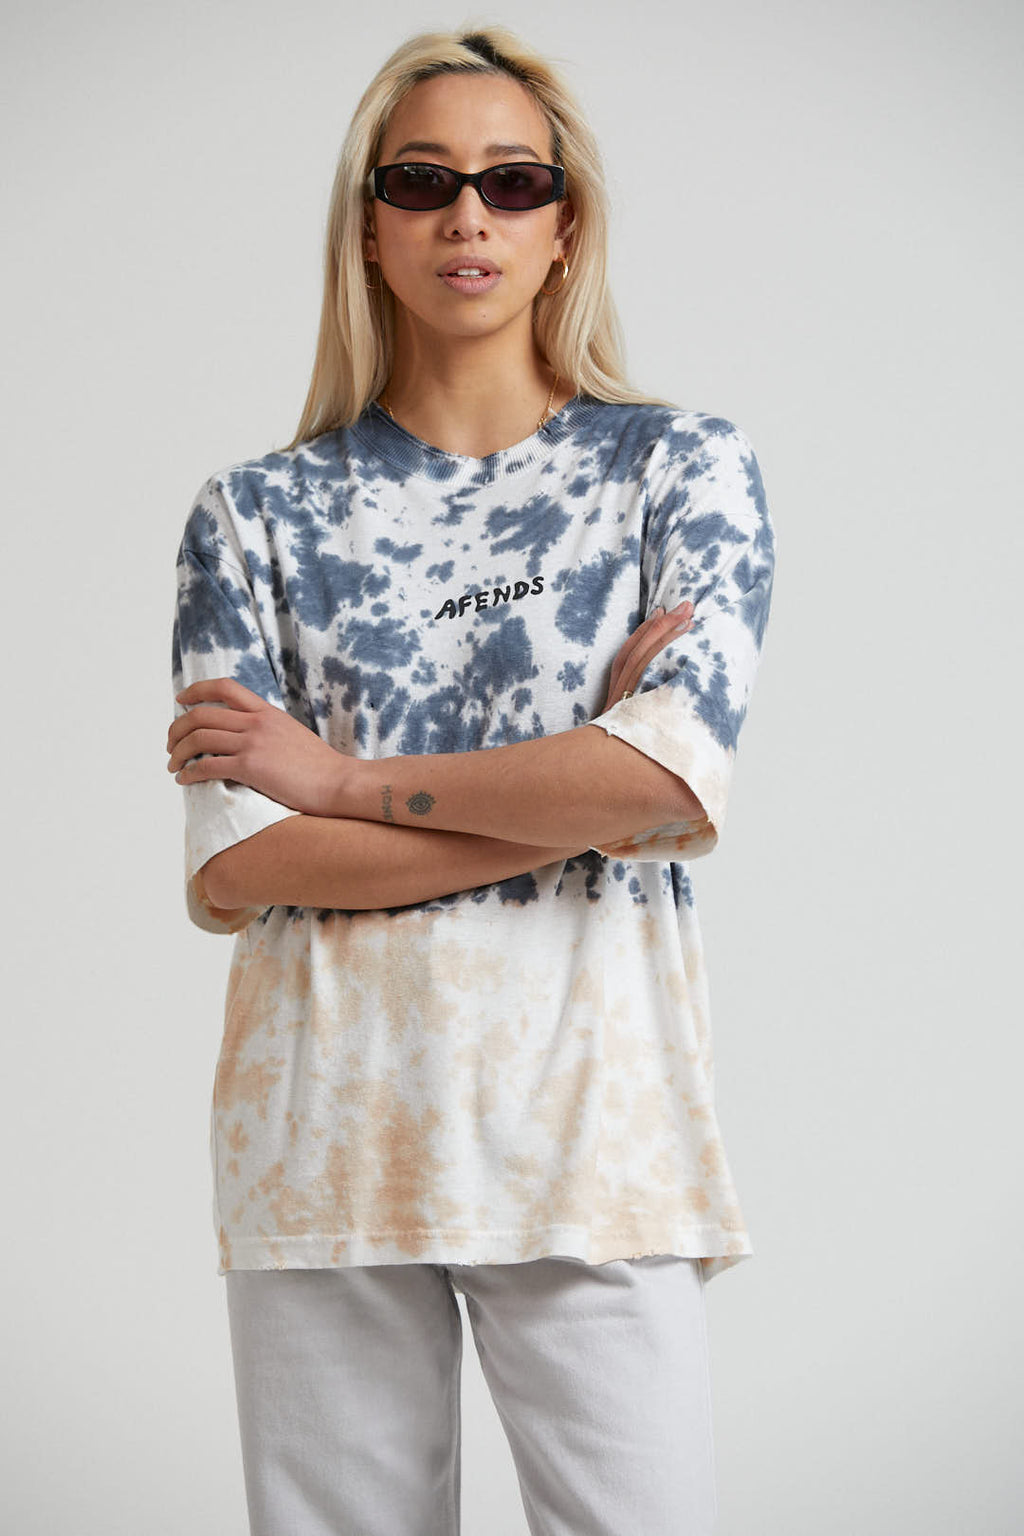 High Status Hemp Oversized Tee Black Tie Dye